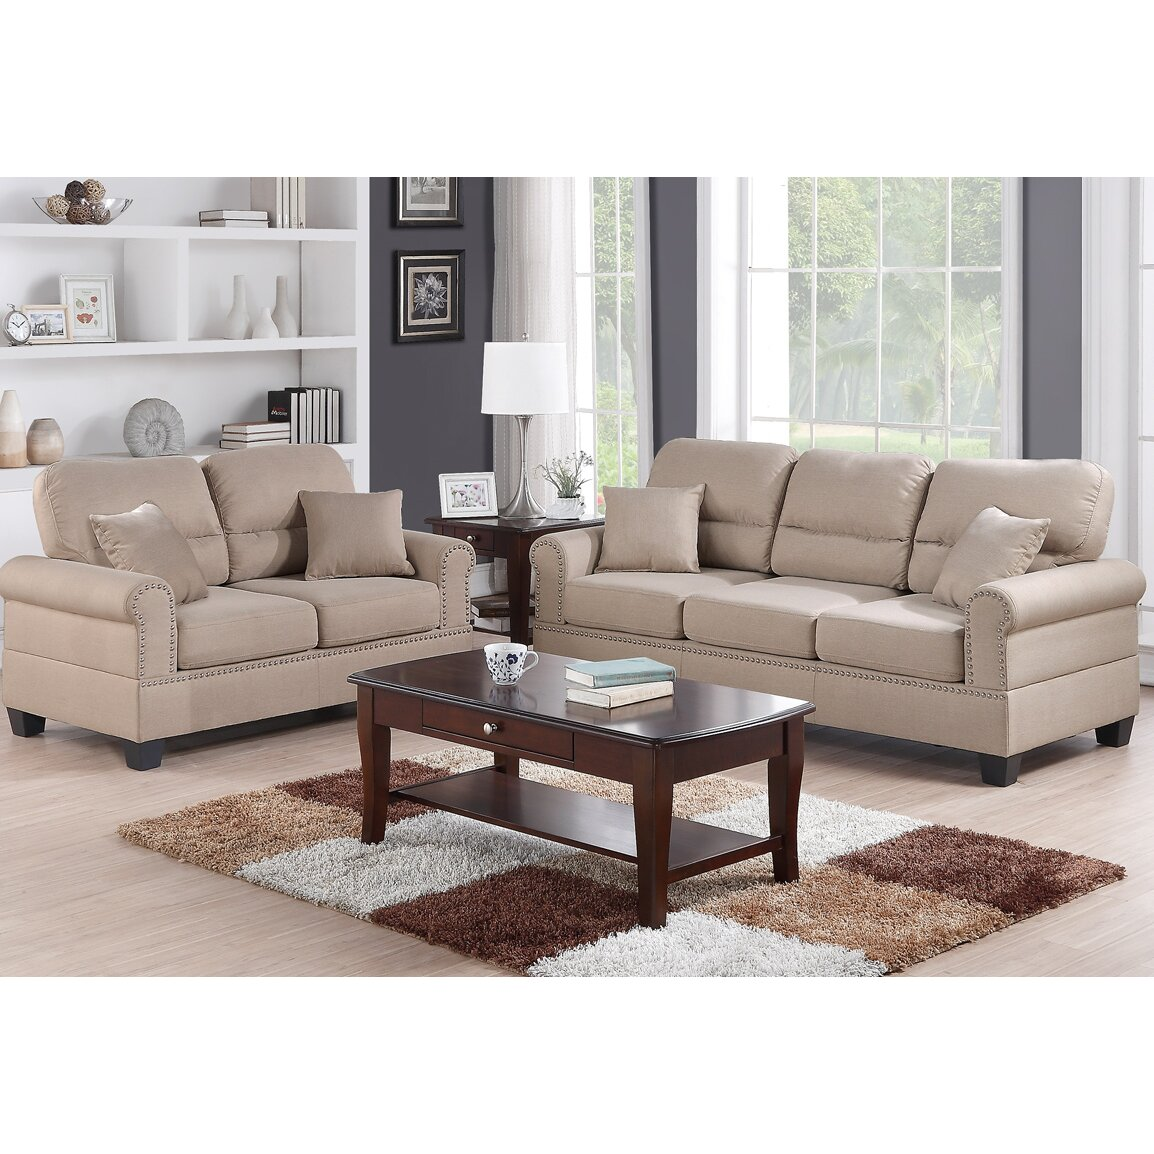 Poundex bobkona shelton sofa and loveseat set reviews for Couch and loveseat